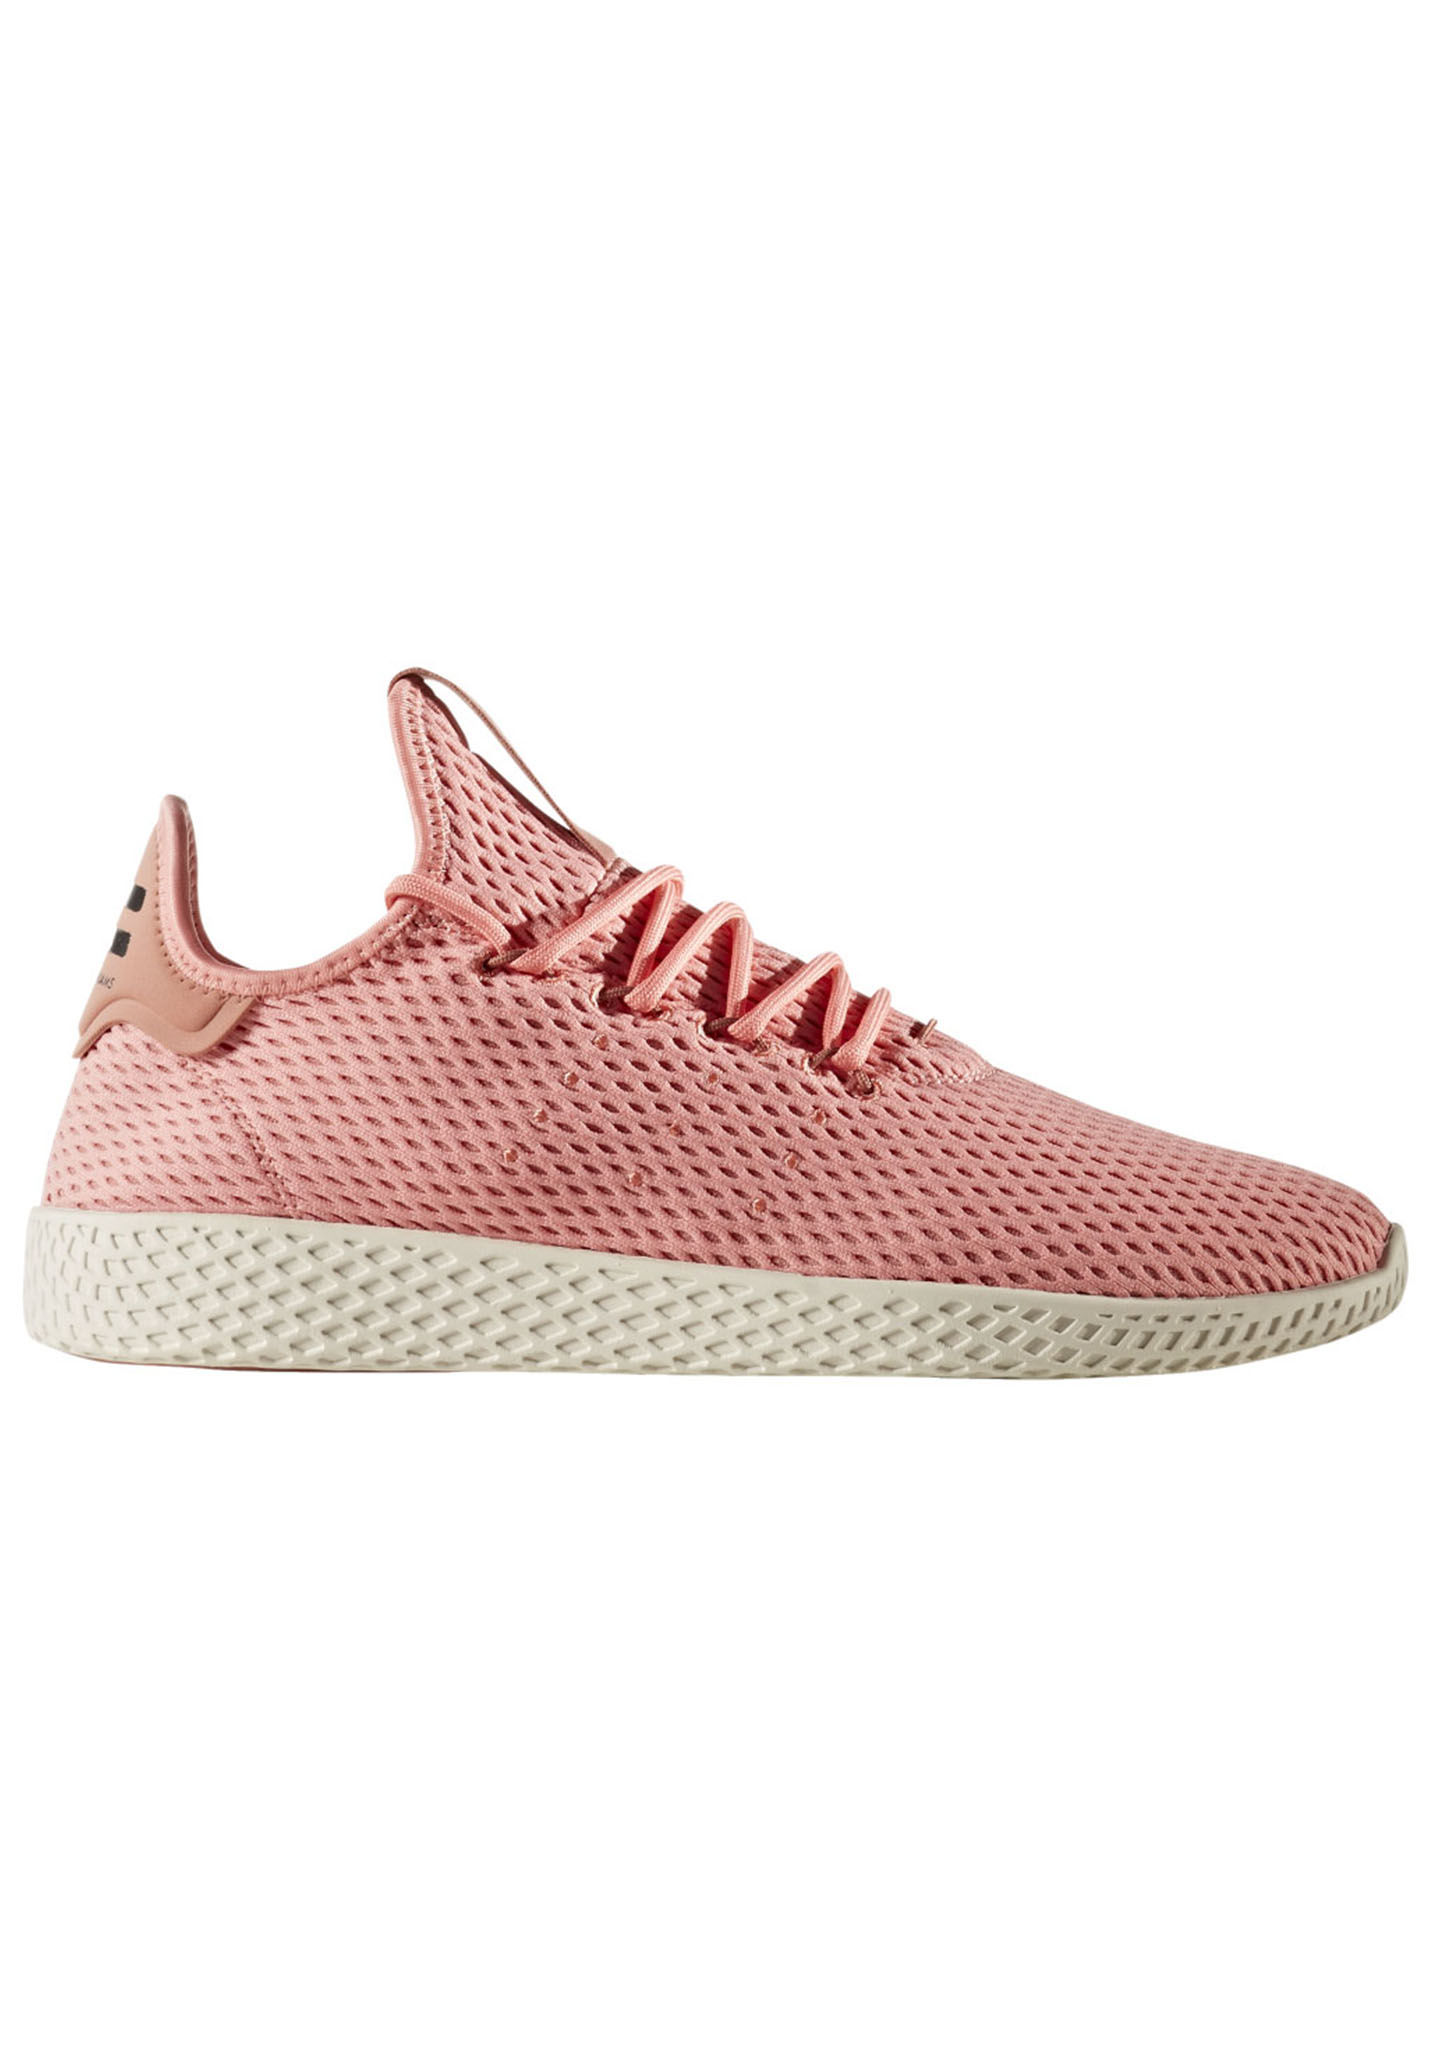 b4da3a1b6 ADIDAS ORIGINALS Pharrell Williams Tennis HU - Sneakers - Pink - Planet  Sports